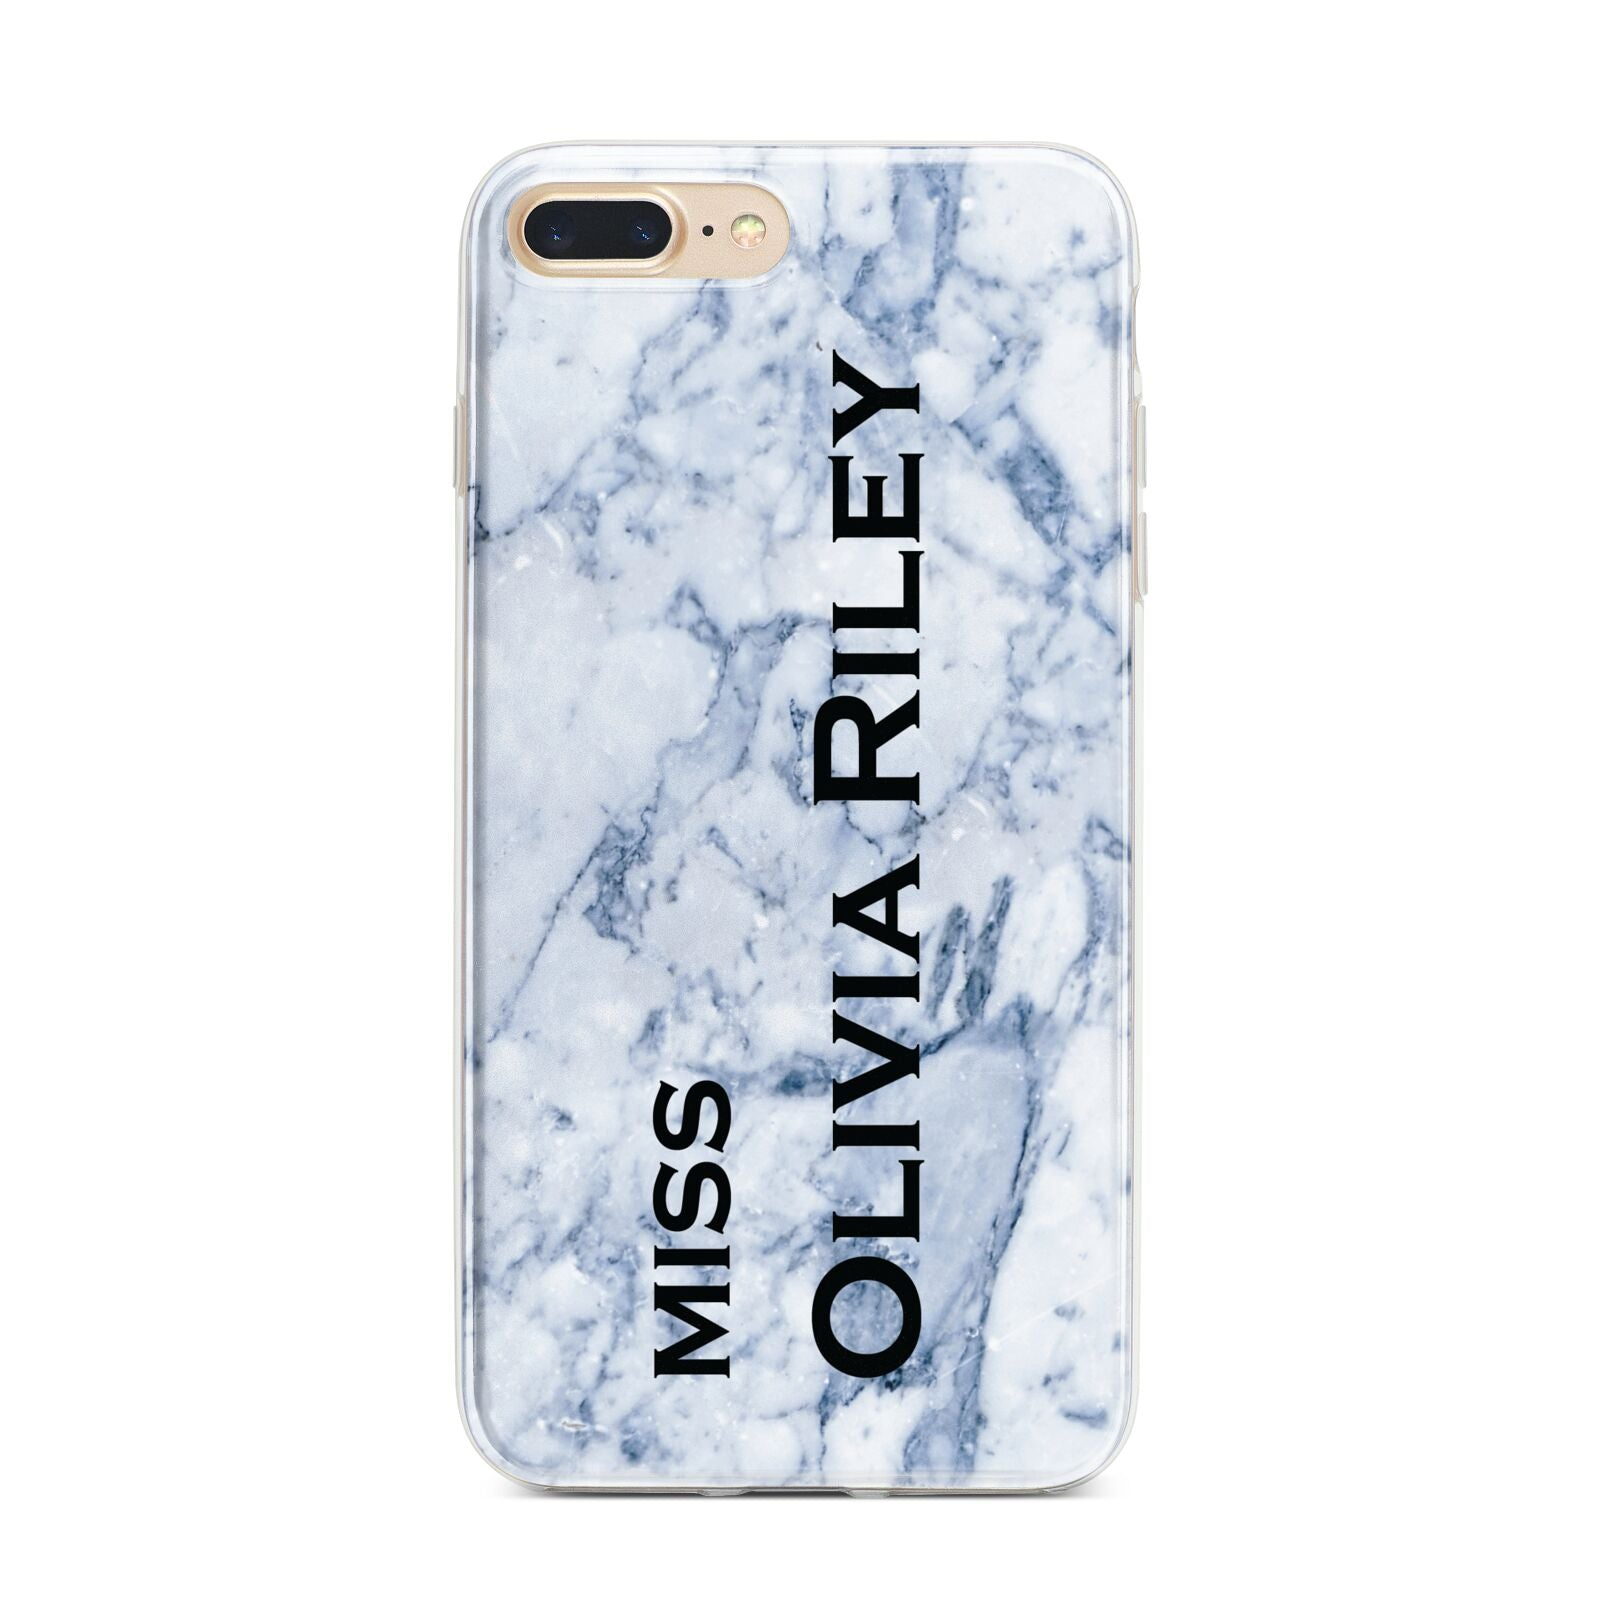 Full Name Grey Marble iPhone 7 Plus Bumper Case on Gold iPhone